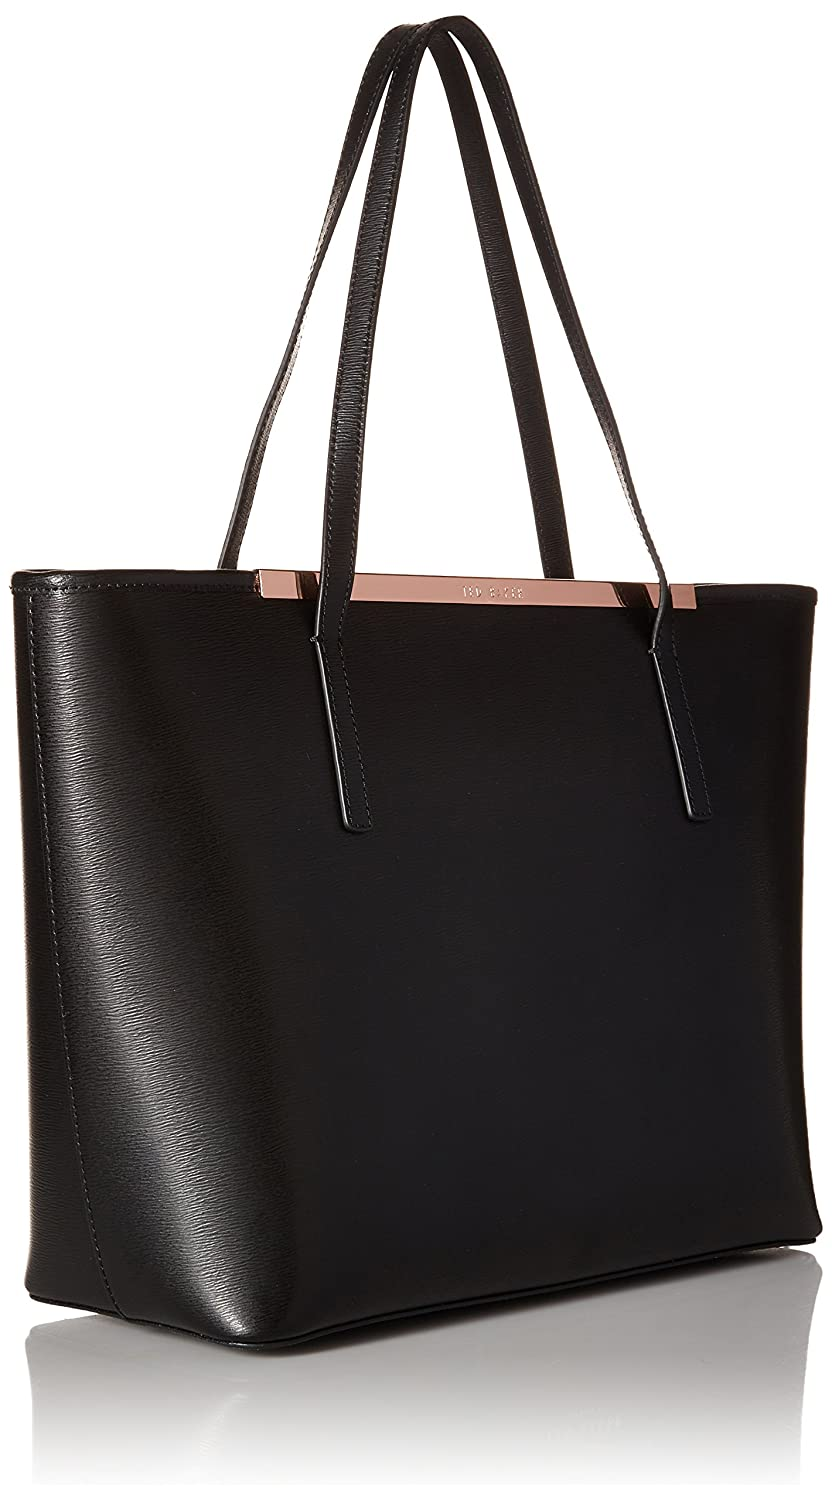 a8c4ddd6f6b Ted Baker Noelle Tote, Large Black Leather Bag with Shadow Floral Clutch  Black N/S: Amazon.co.uk: Shoes & Bags